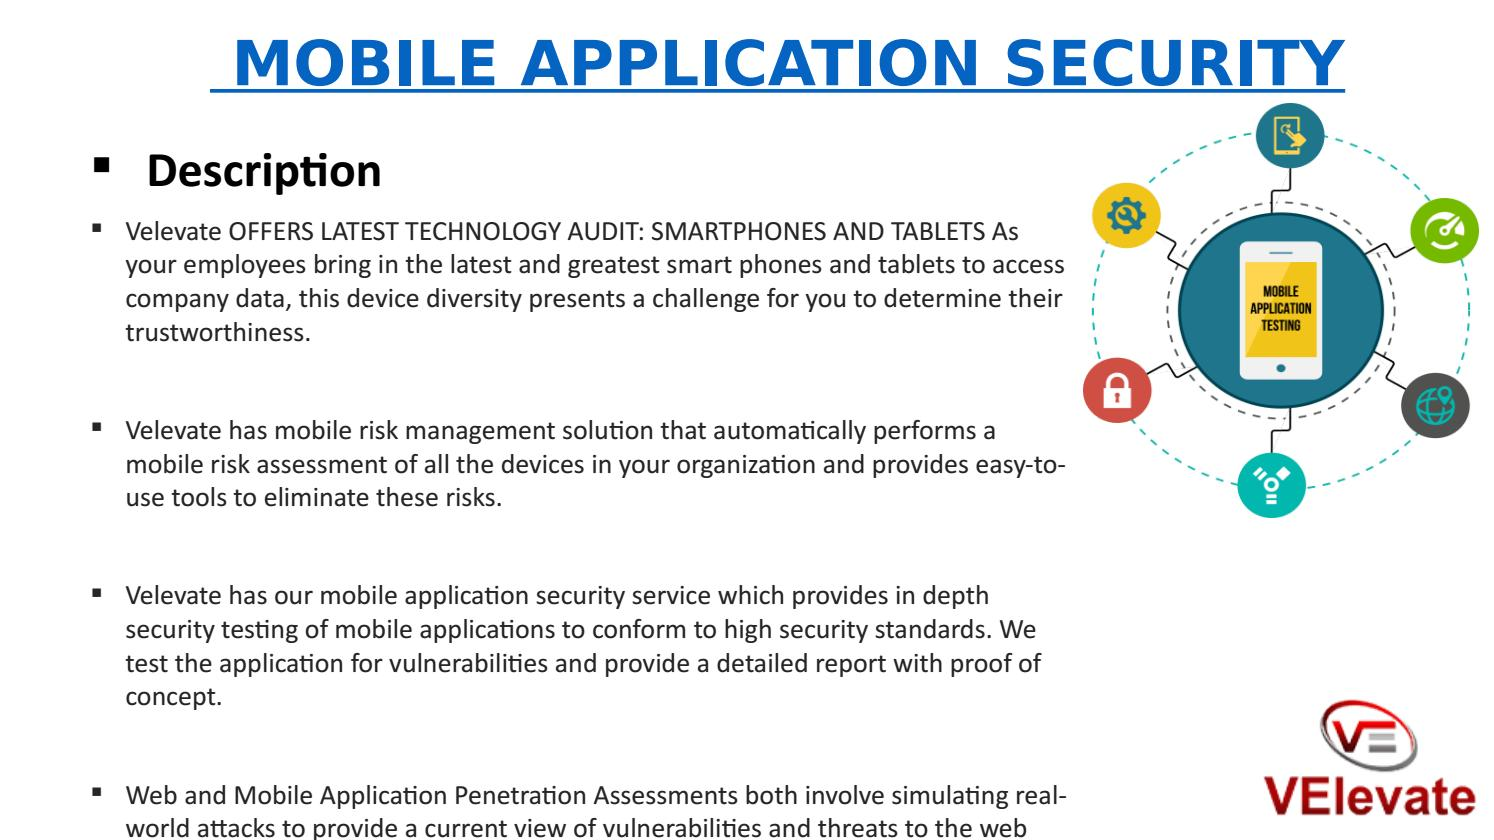 Mobile Application Security Services ppt by velevate11 - issuu